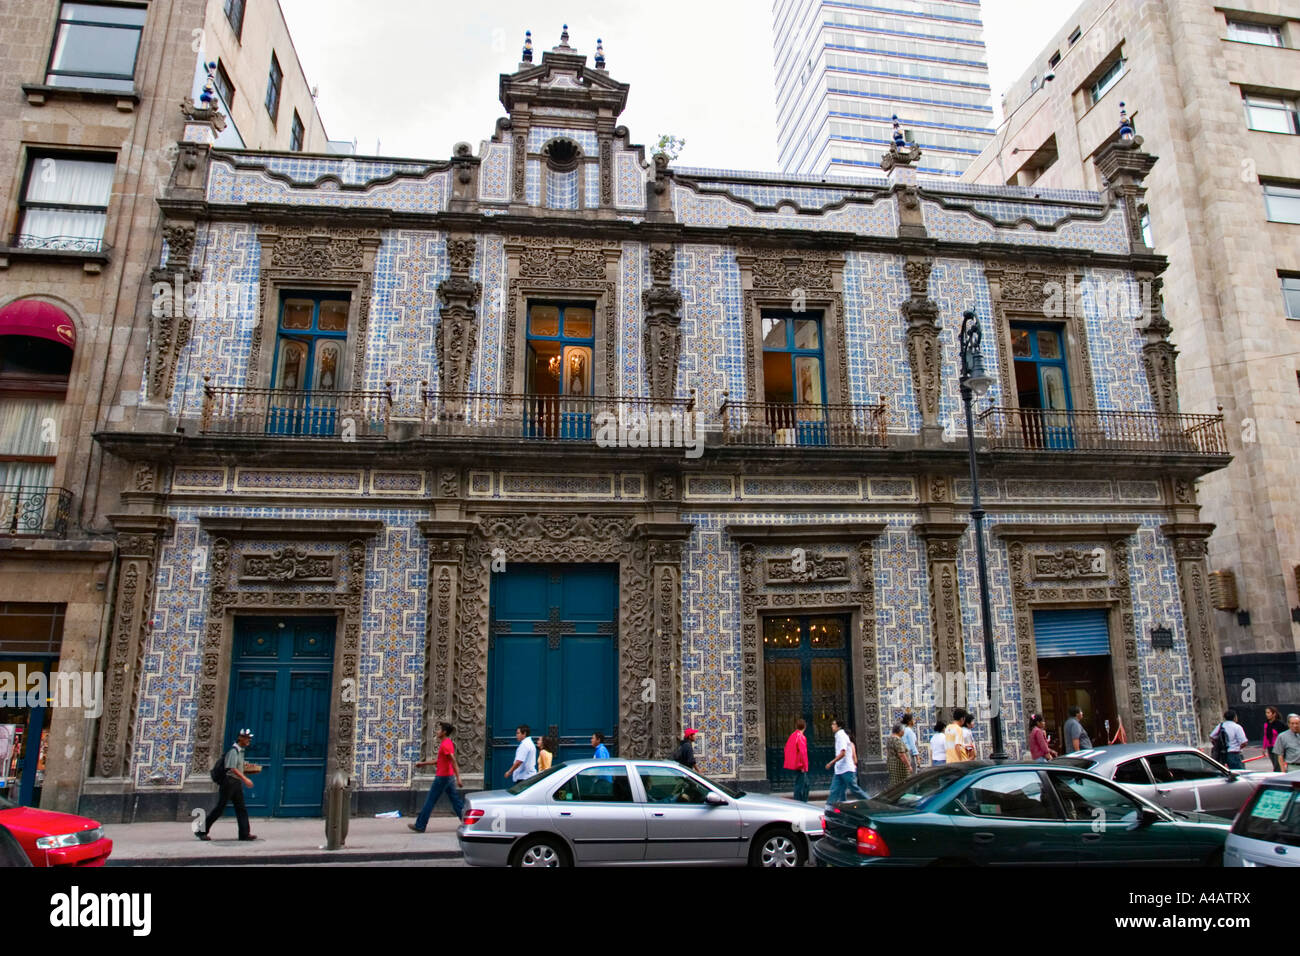 Casa de los azulejos mexico city mexico stock photo for Casa de los azulejos historia